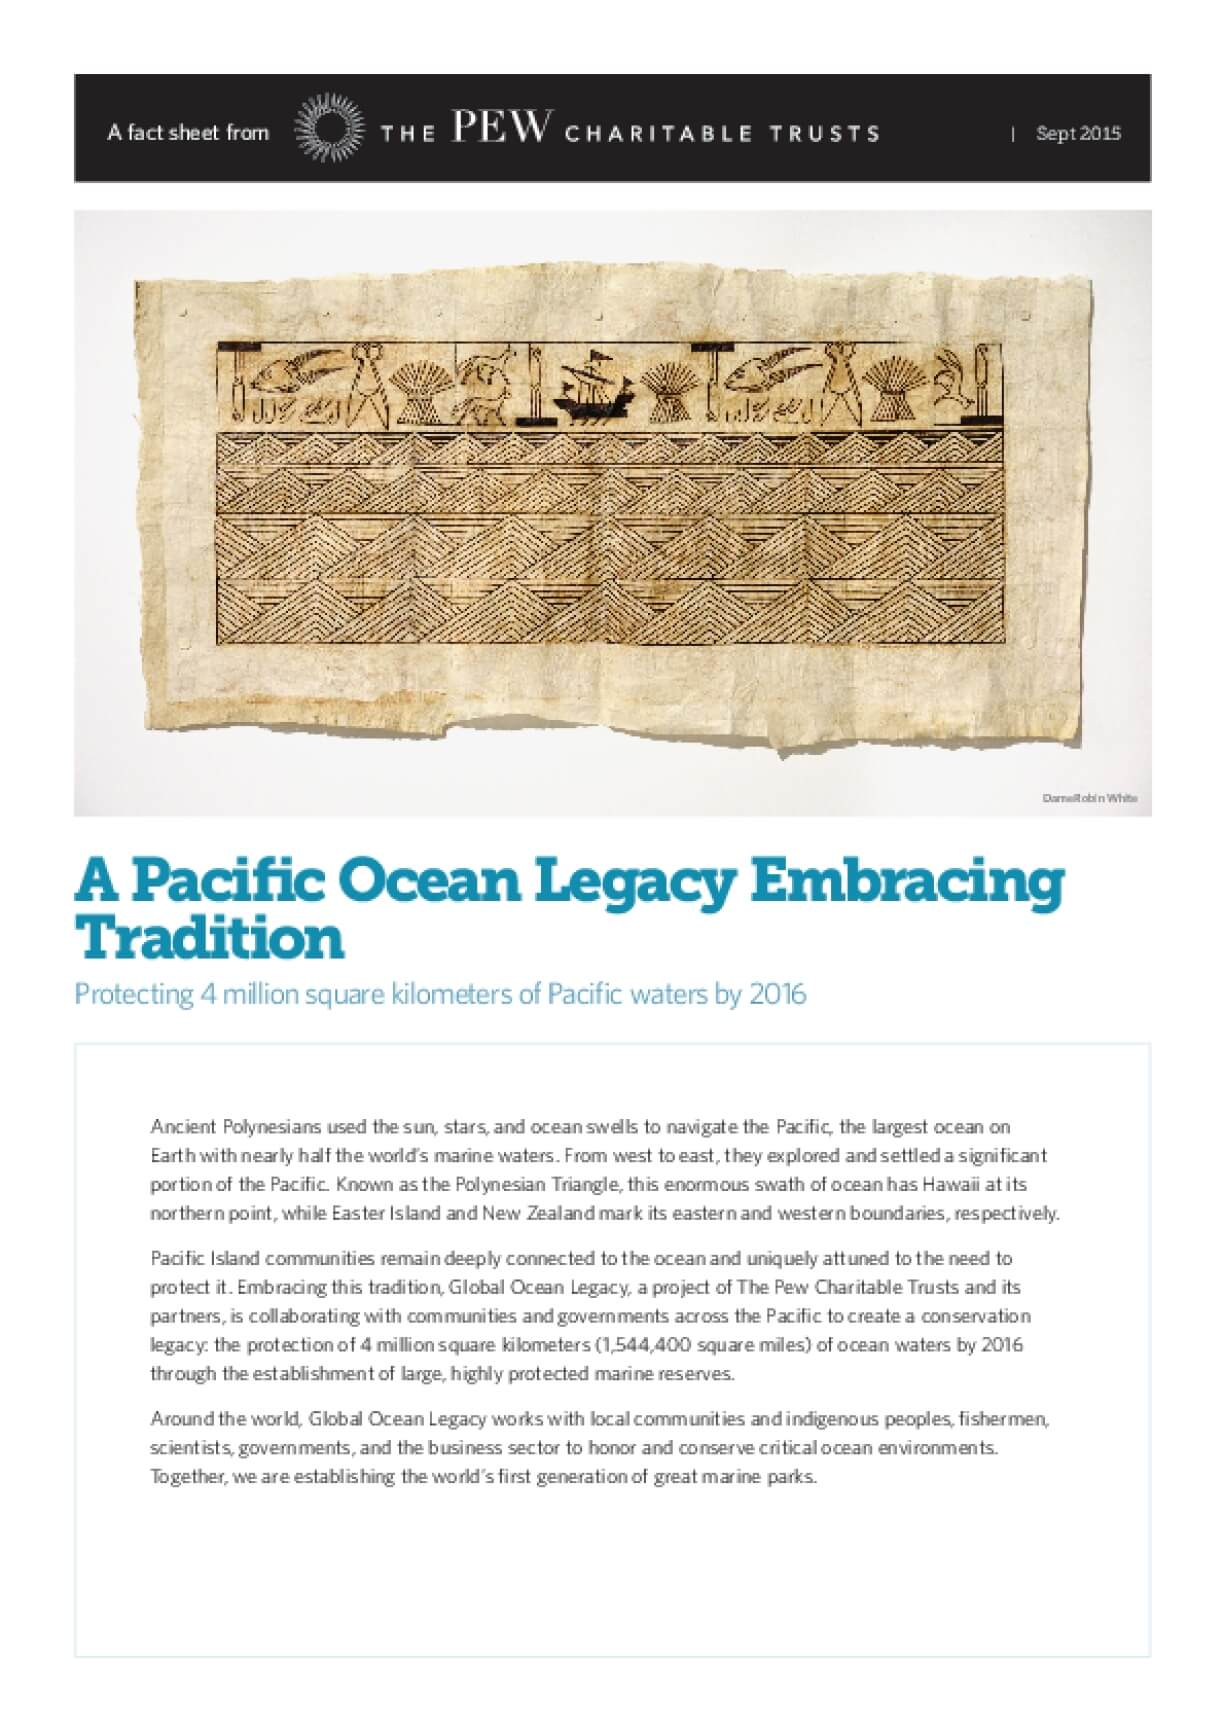 A Pacific Ocean Legacy Embracing Tradition: Protecting 4 Million Square Kilometers of Pacific Waters by 2016